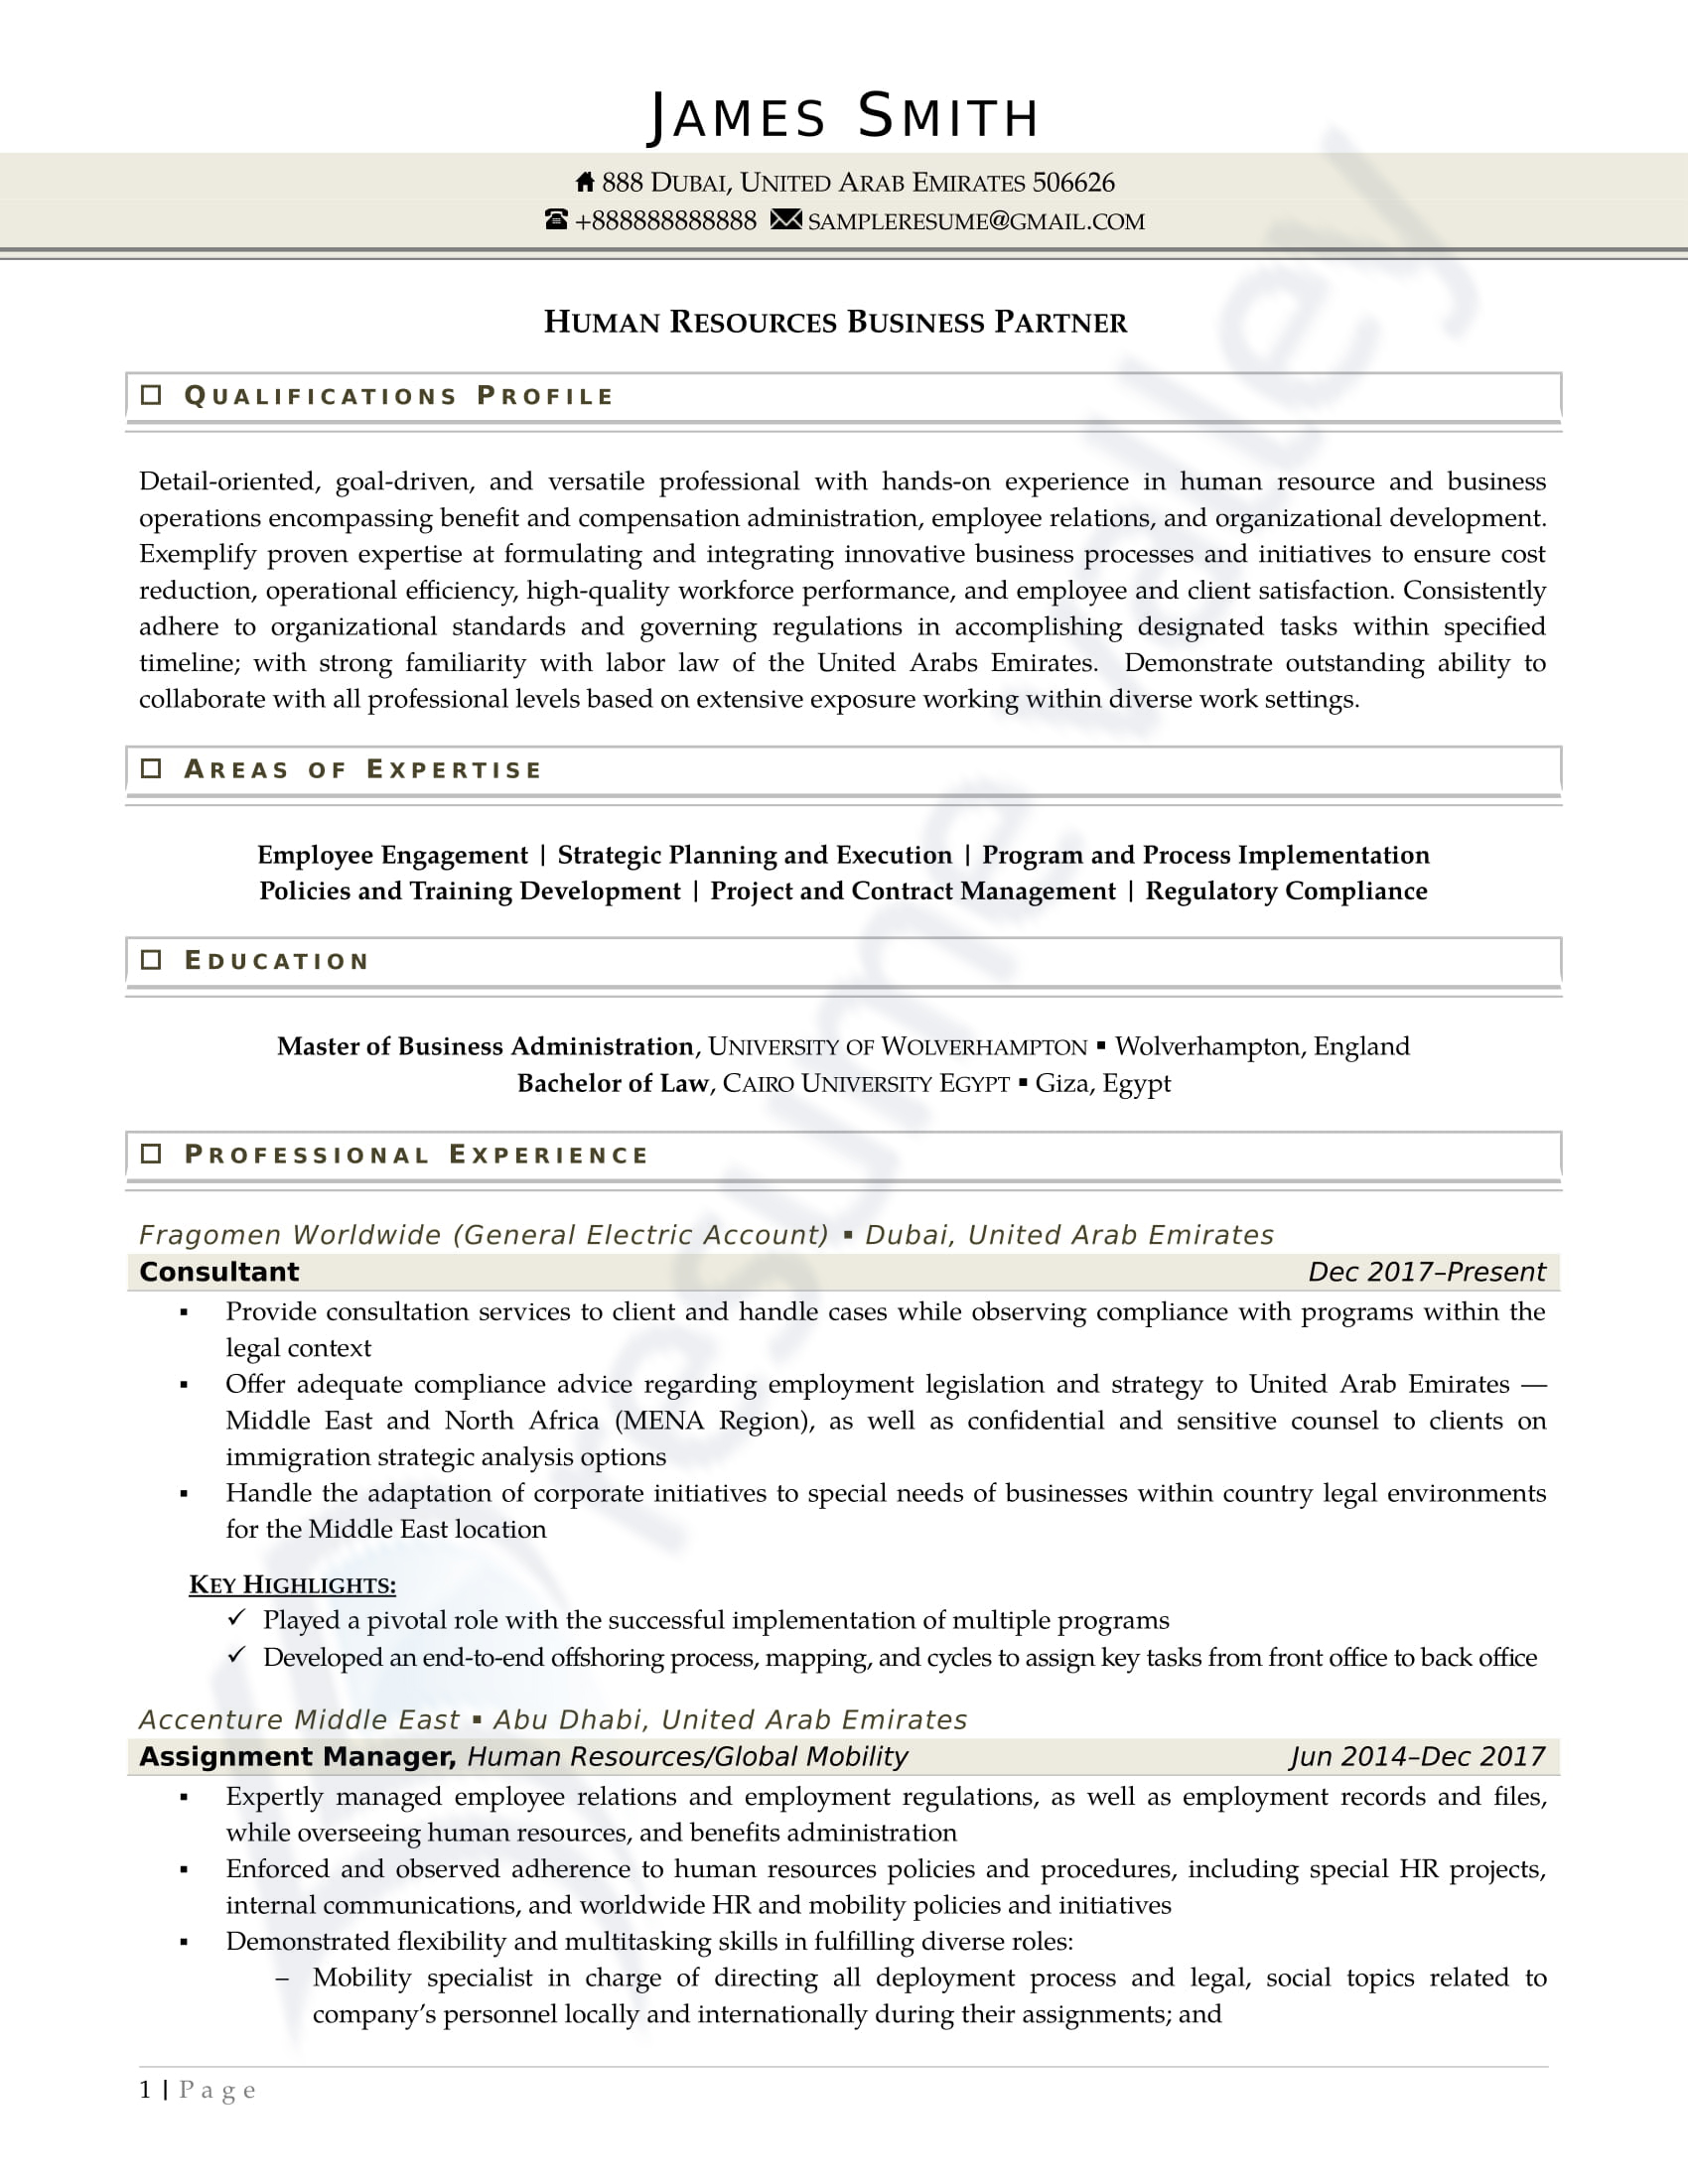 Hr Business Partner_Curriculum Vitae